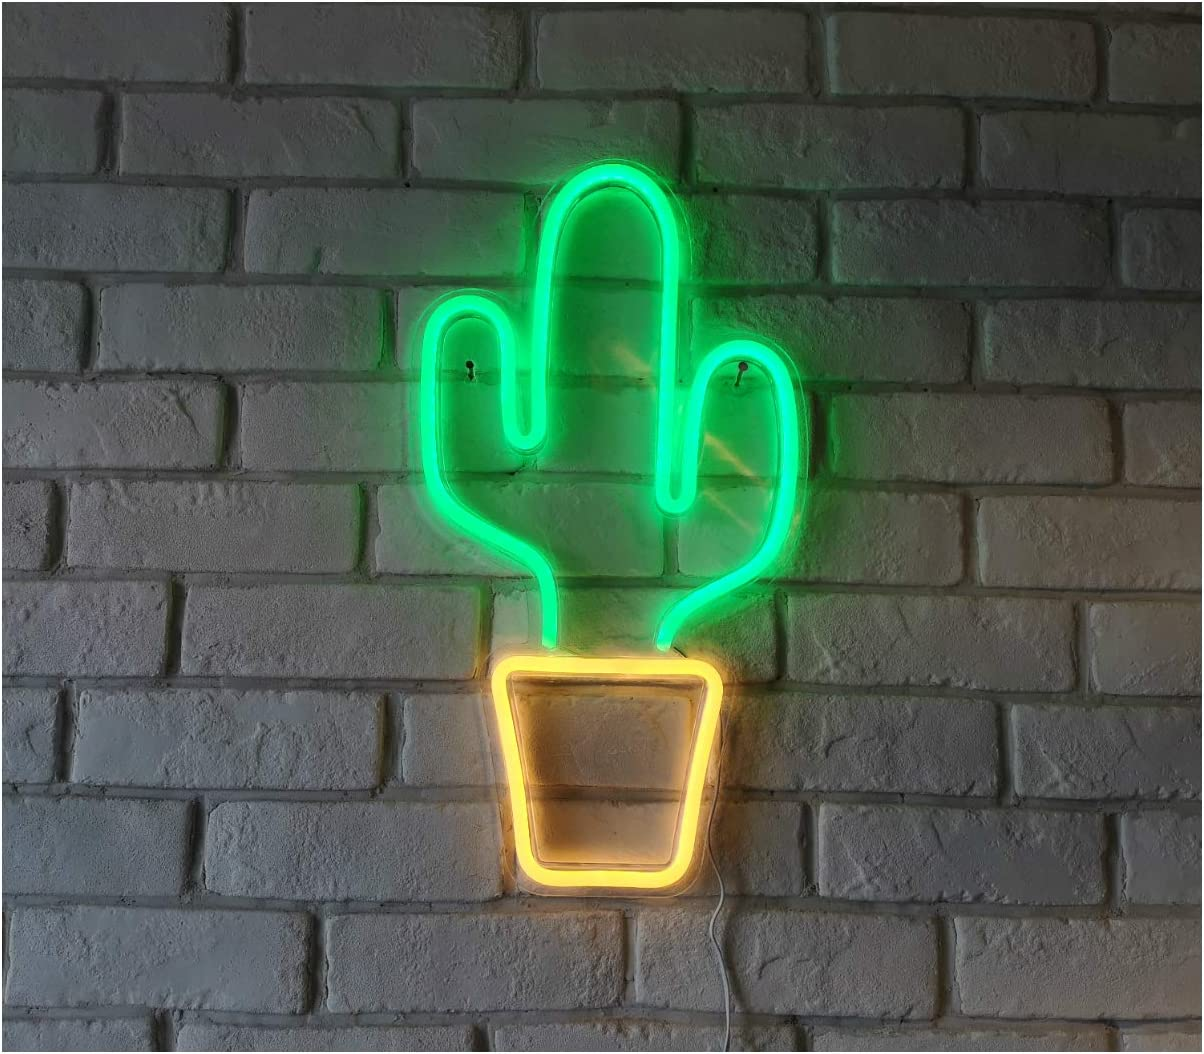 "LED Neon Light Sign, 18.5""x10"" Green Cactus Wall Art Decorative Neon Sign Pin Wall Hanging Sign for Bedroom Living Room Kid's Room Party,Home Decor Neon Night Light USB Powered(Green Cactus)"